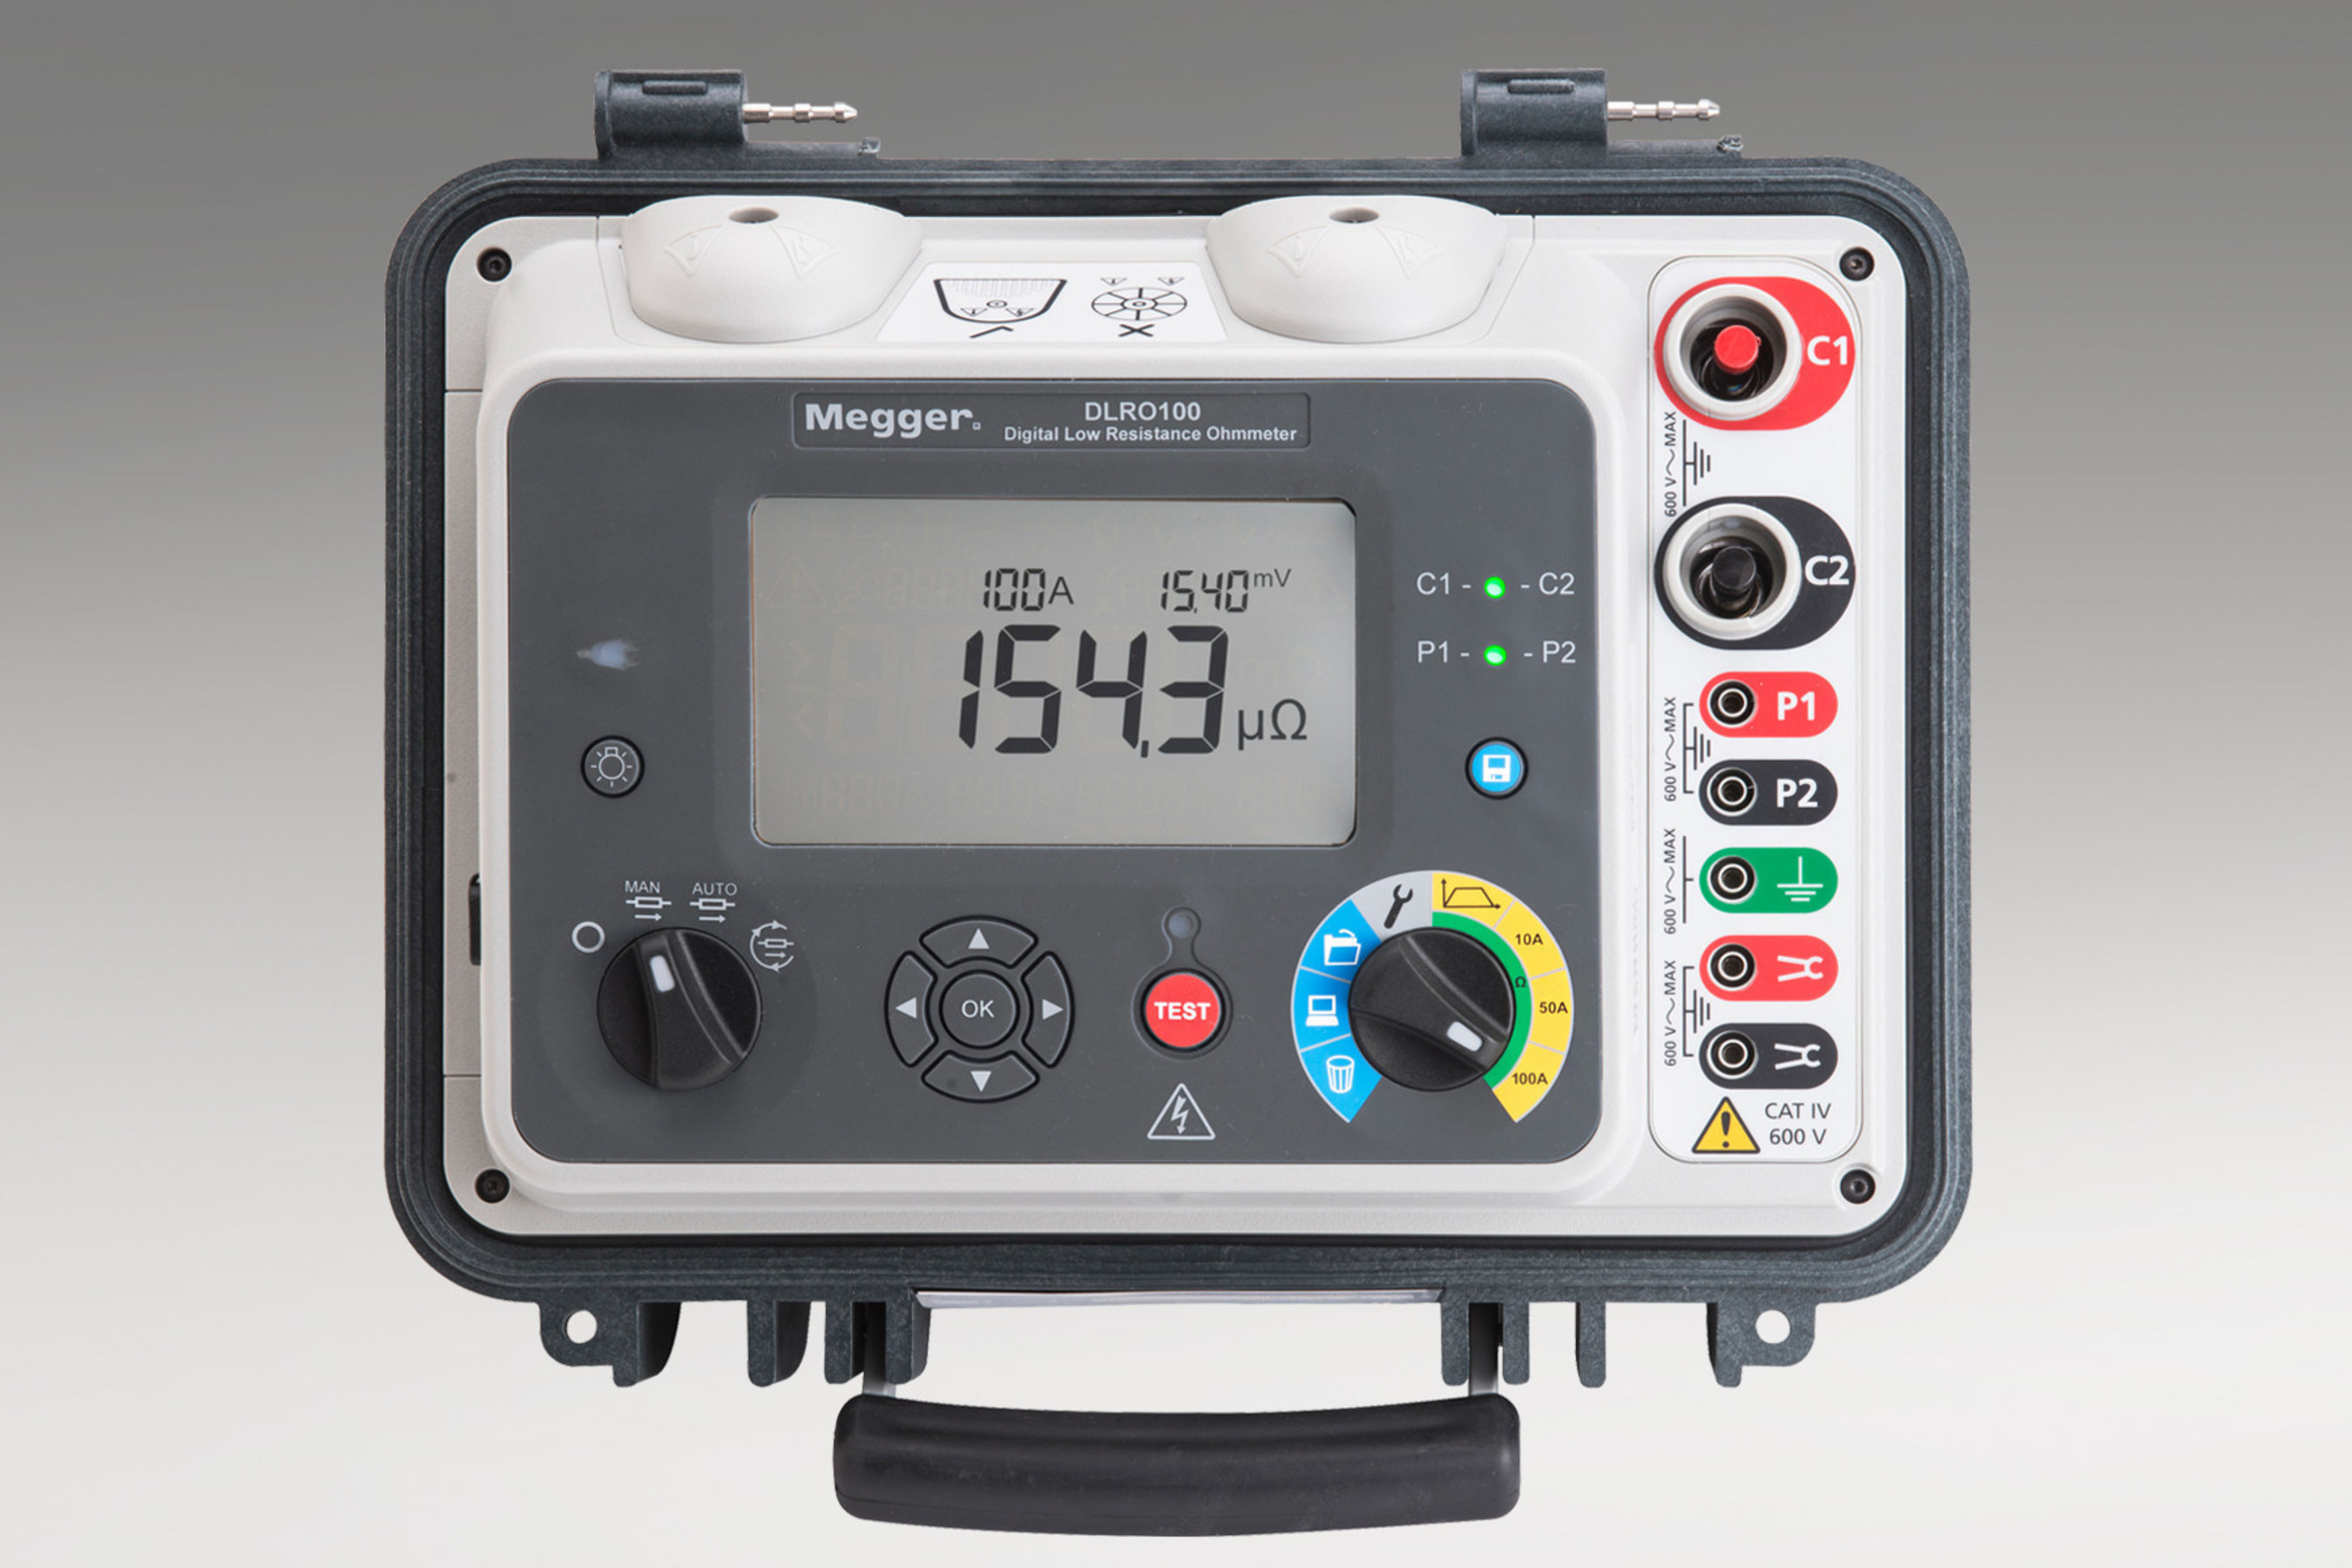 Digital Low Resistance Ohmmeters from Megger Test Resistance with Up to 100 A